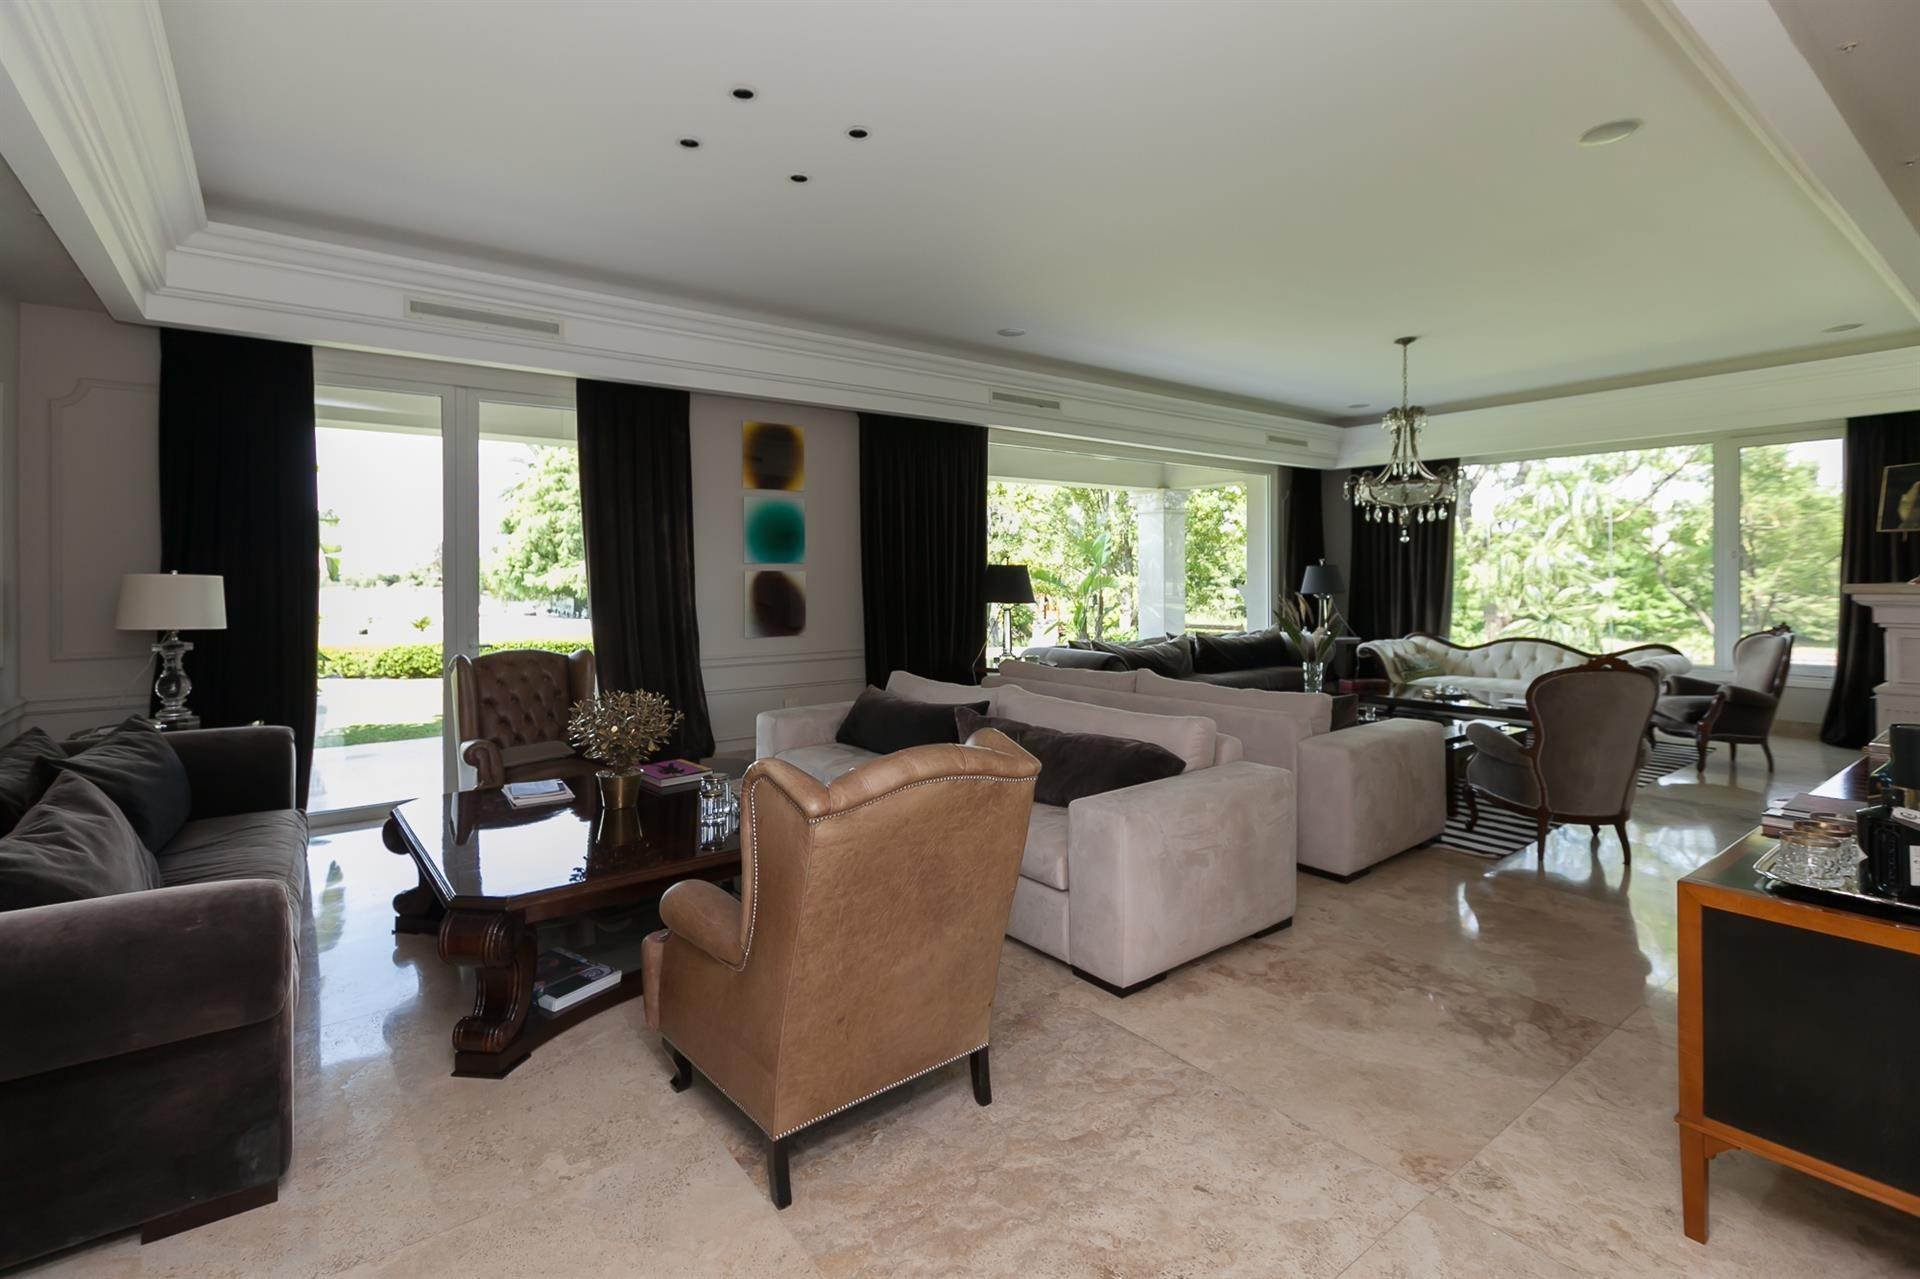 8. Single Family Home for Sale at Incredible house in La Isla, Nordelta Tigre, Argentina